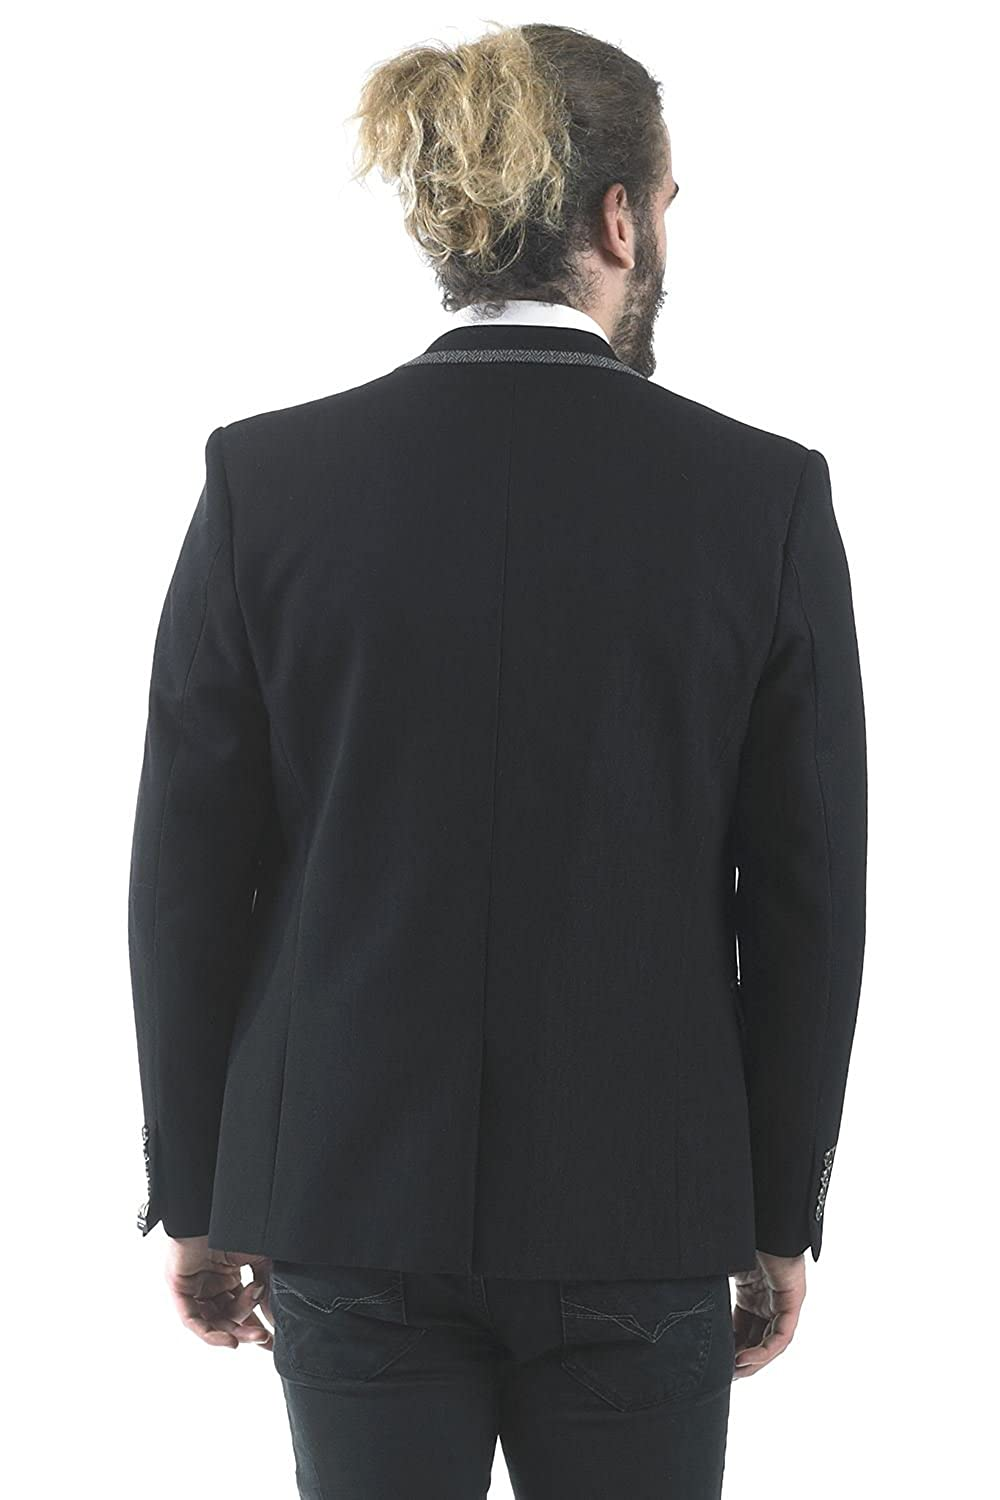 Marc Darcy Mens Designer Casual Two Button Single Breasted Black Denim Look Blazer Business Jacket Chest Sizes 34-52